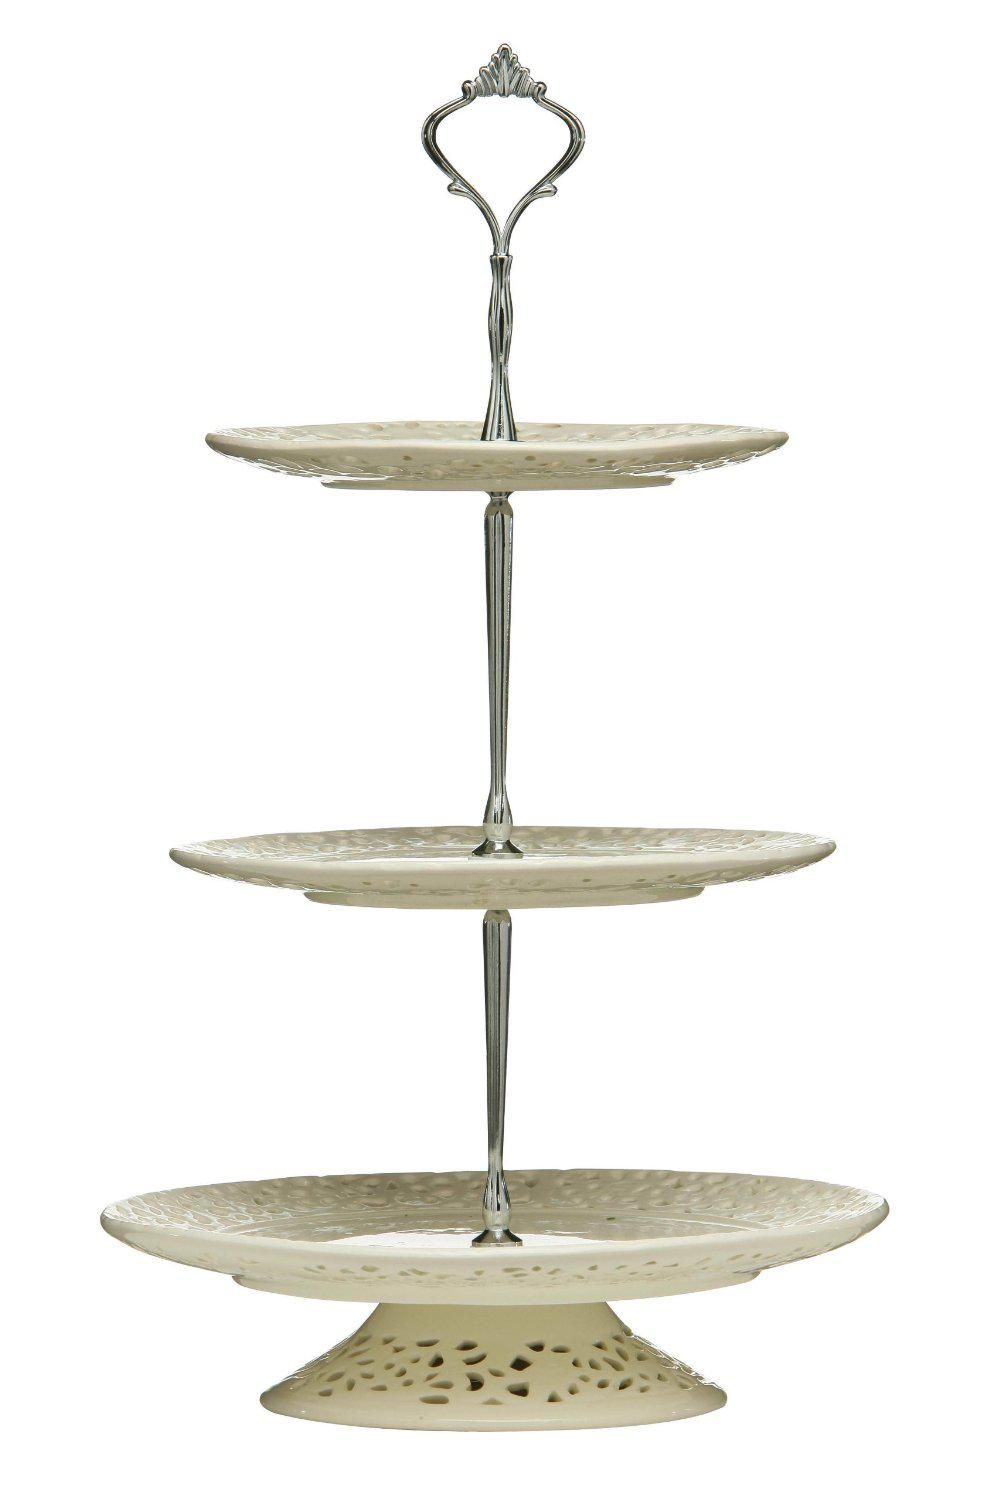 New Gold/Silver 3 Tier Cake Stand Cake Plate Display Holder Handle Fittings Metal for Tea Shop Room Hotel Wedding Party 3 Tier Cake Stand Wedding Cake Stand ...  sc 1 st  DHgate.com & New Gold/Silver 3 Tier Cake Stand Cake Plate Display Holder Handle ...